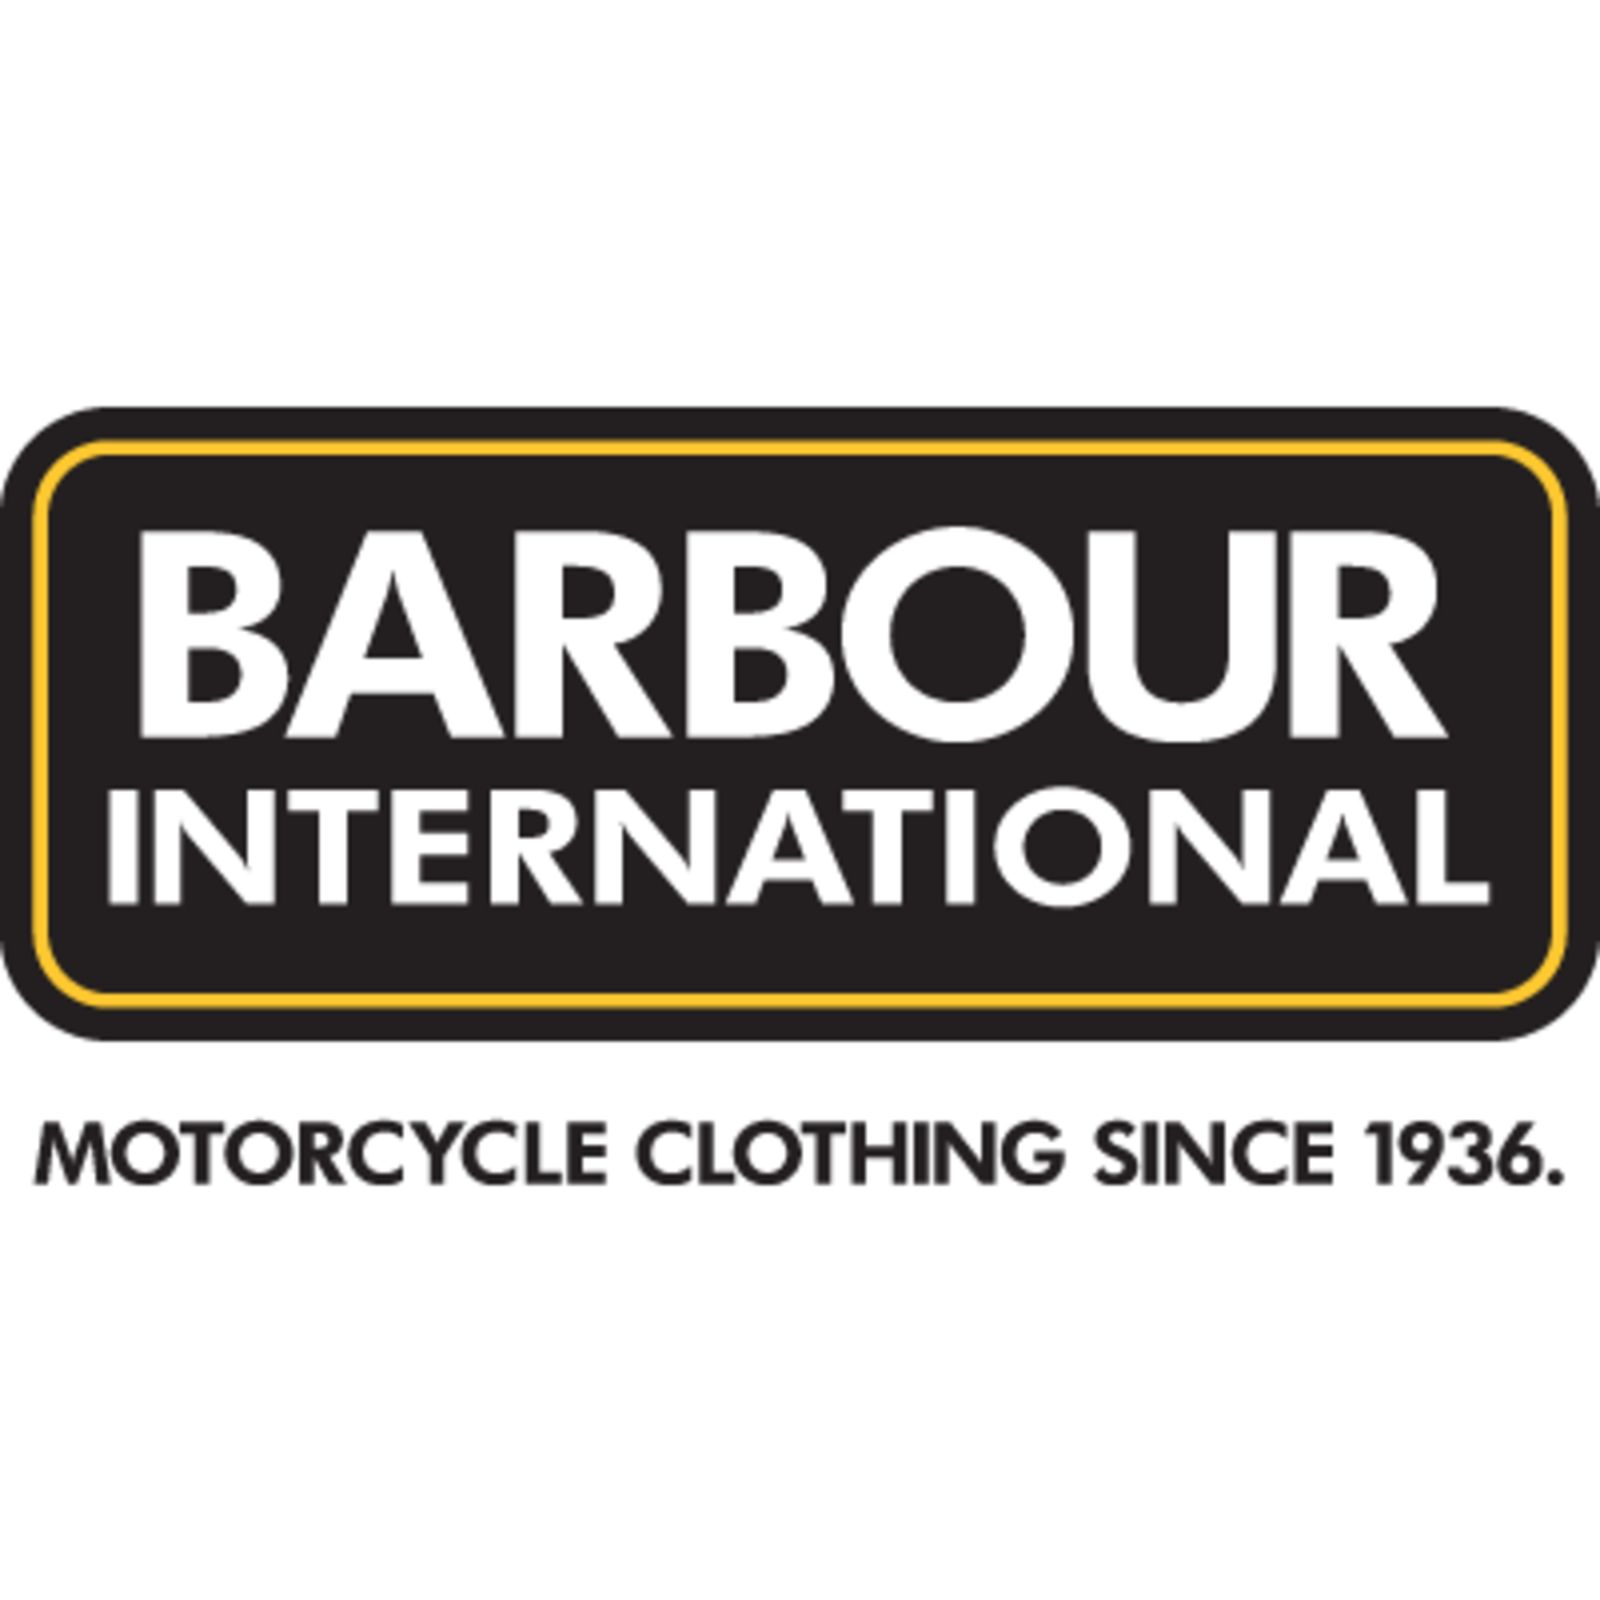 Barbour International (Image 1)